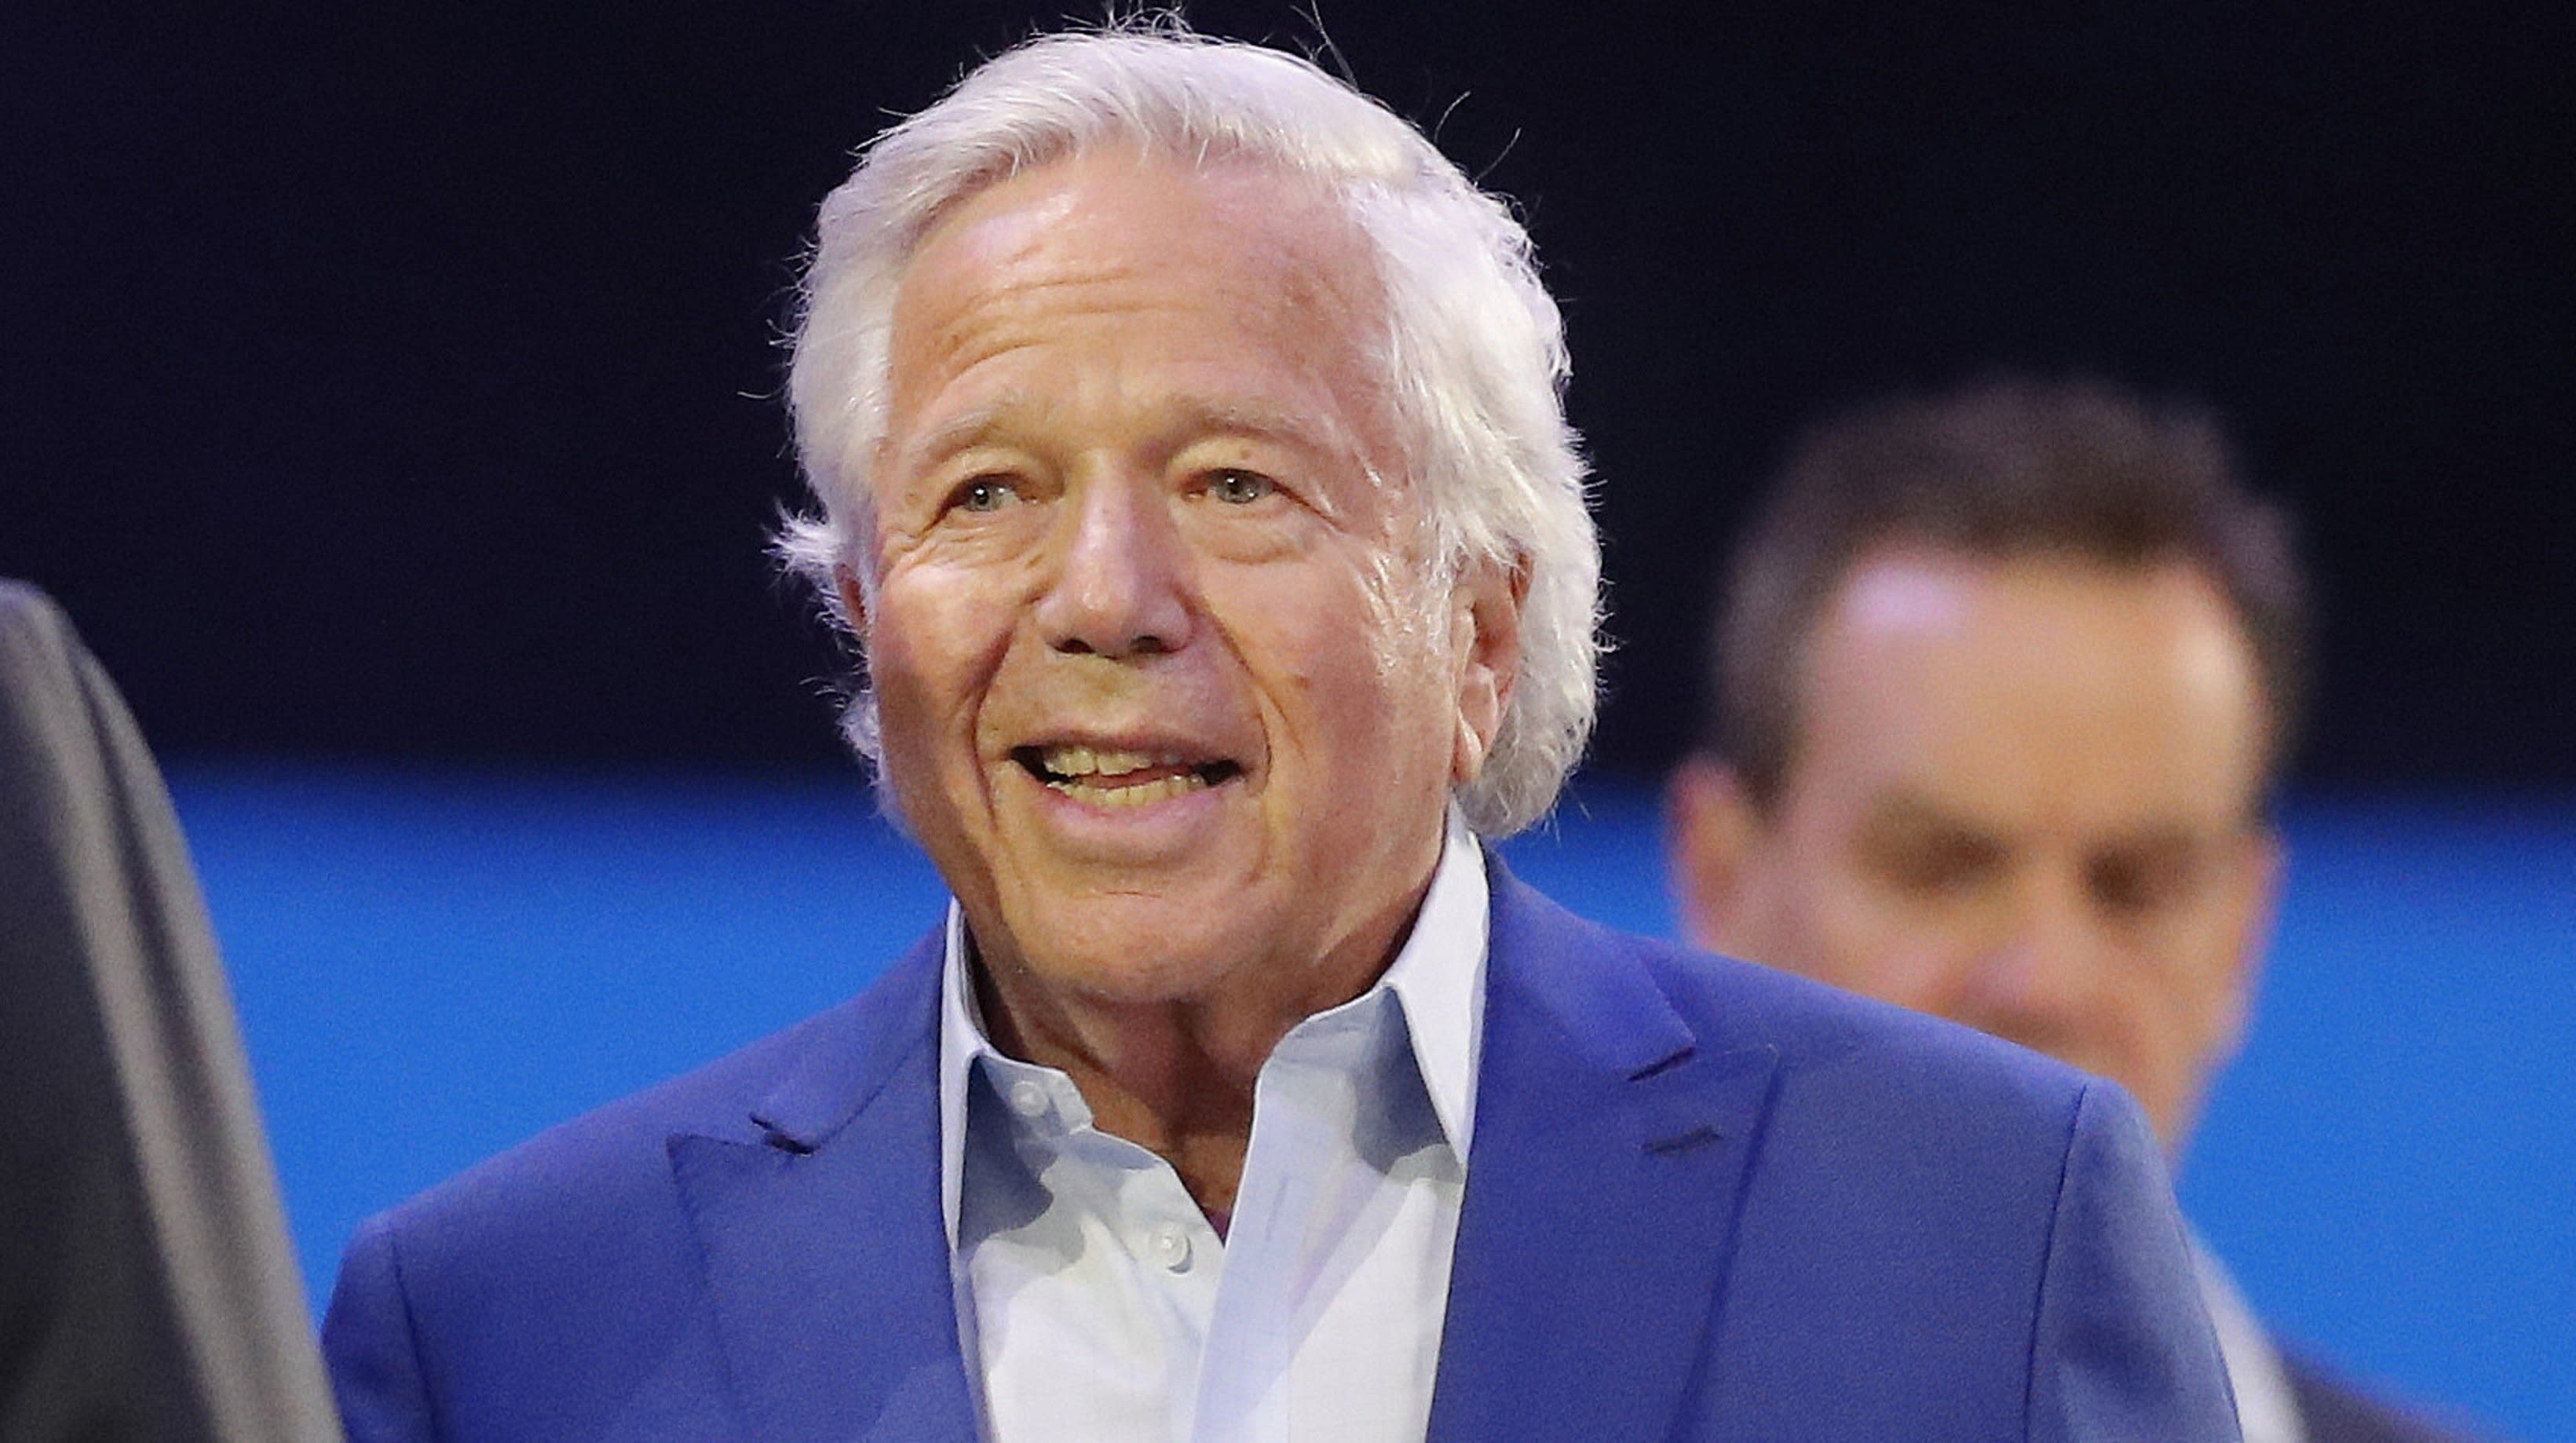 New England Patriots Owner Praises Donald Trump: Working In Country's Best Interests